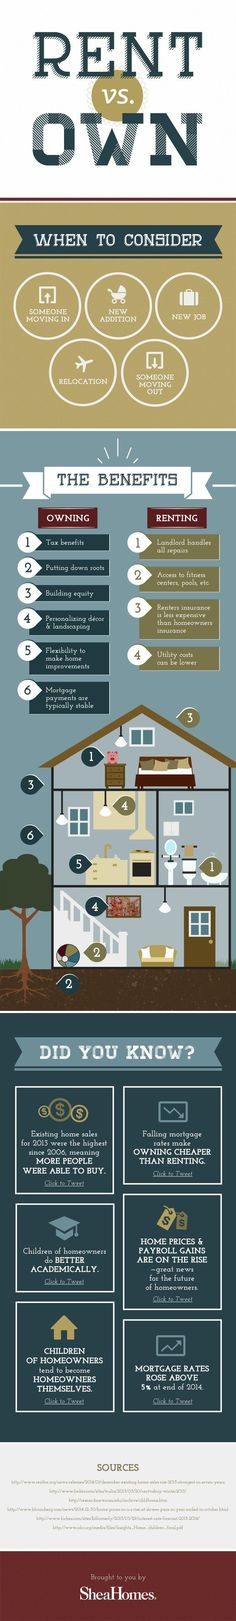 Renting Vs Owning a Home #infographic #Renting #RealEstate #Home